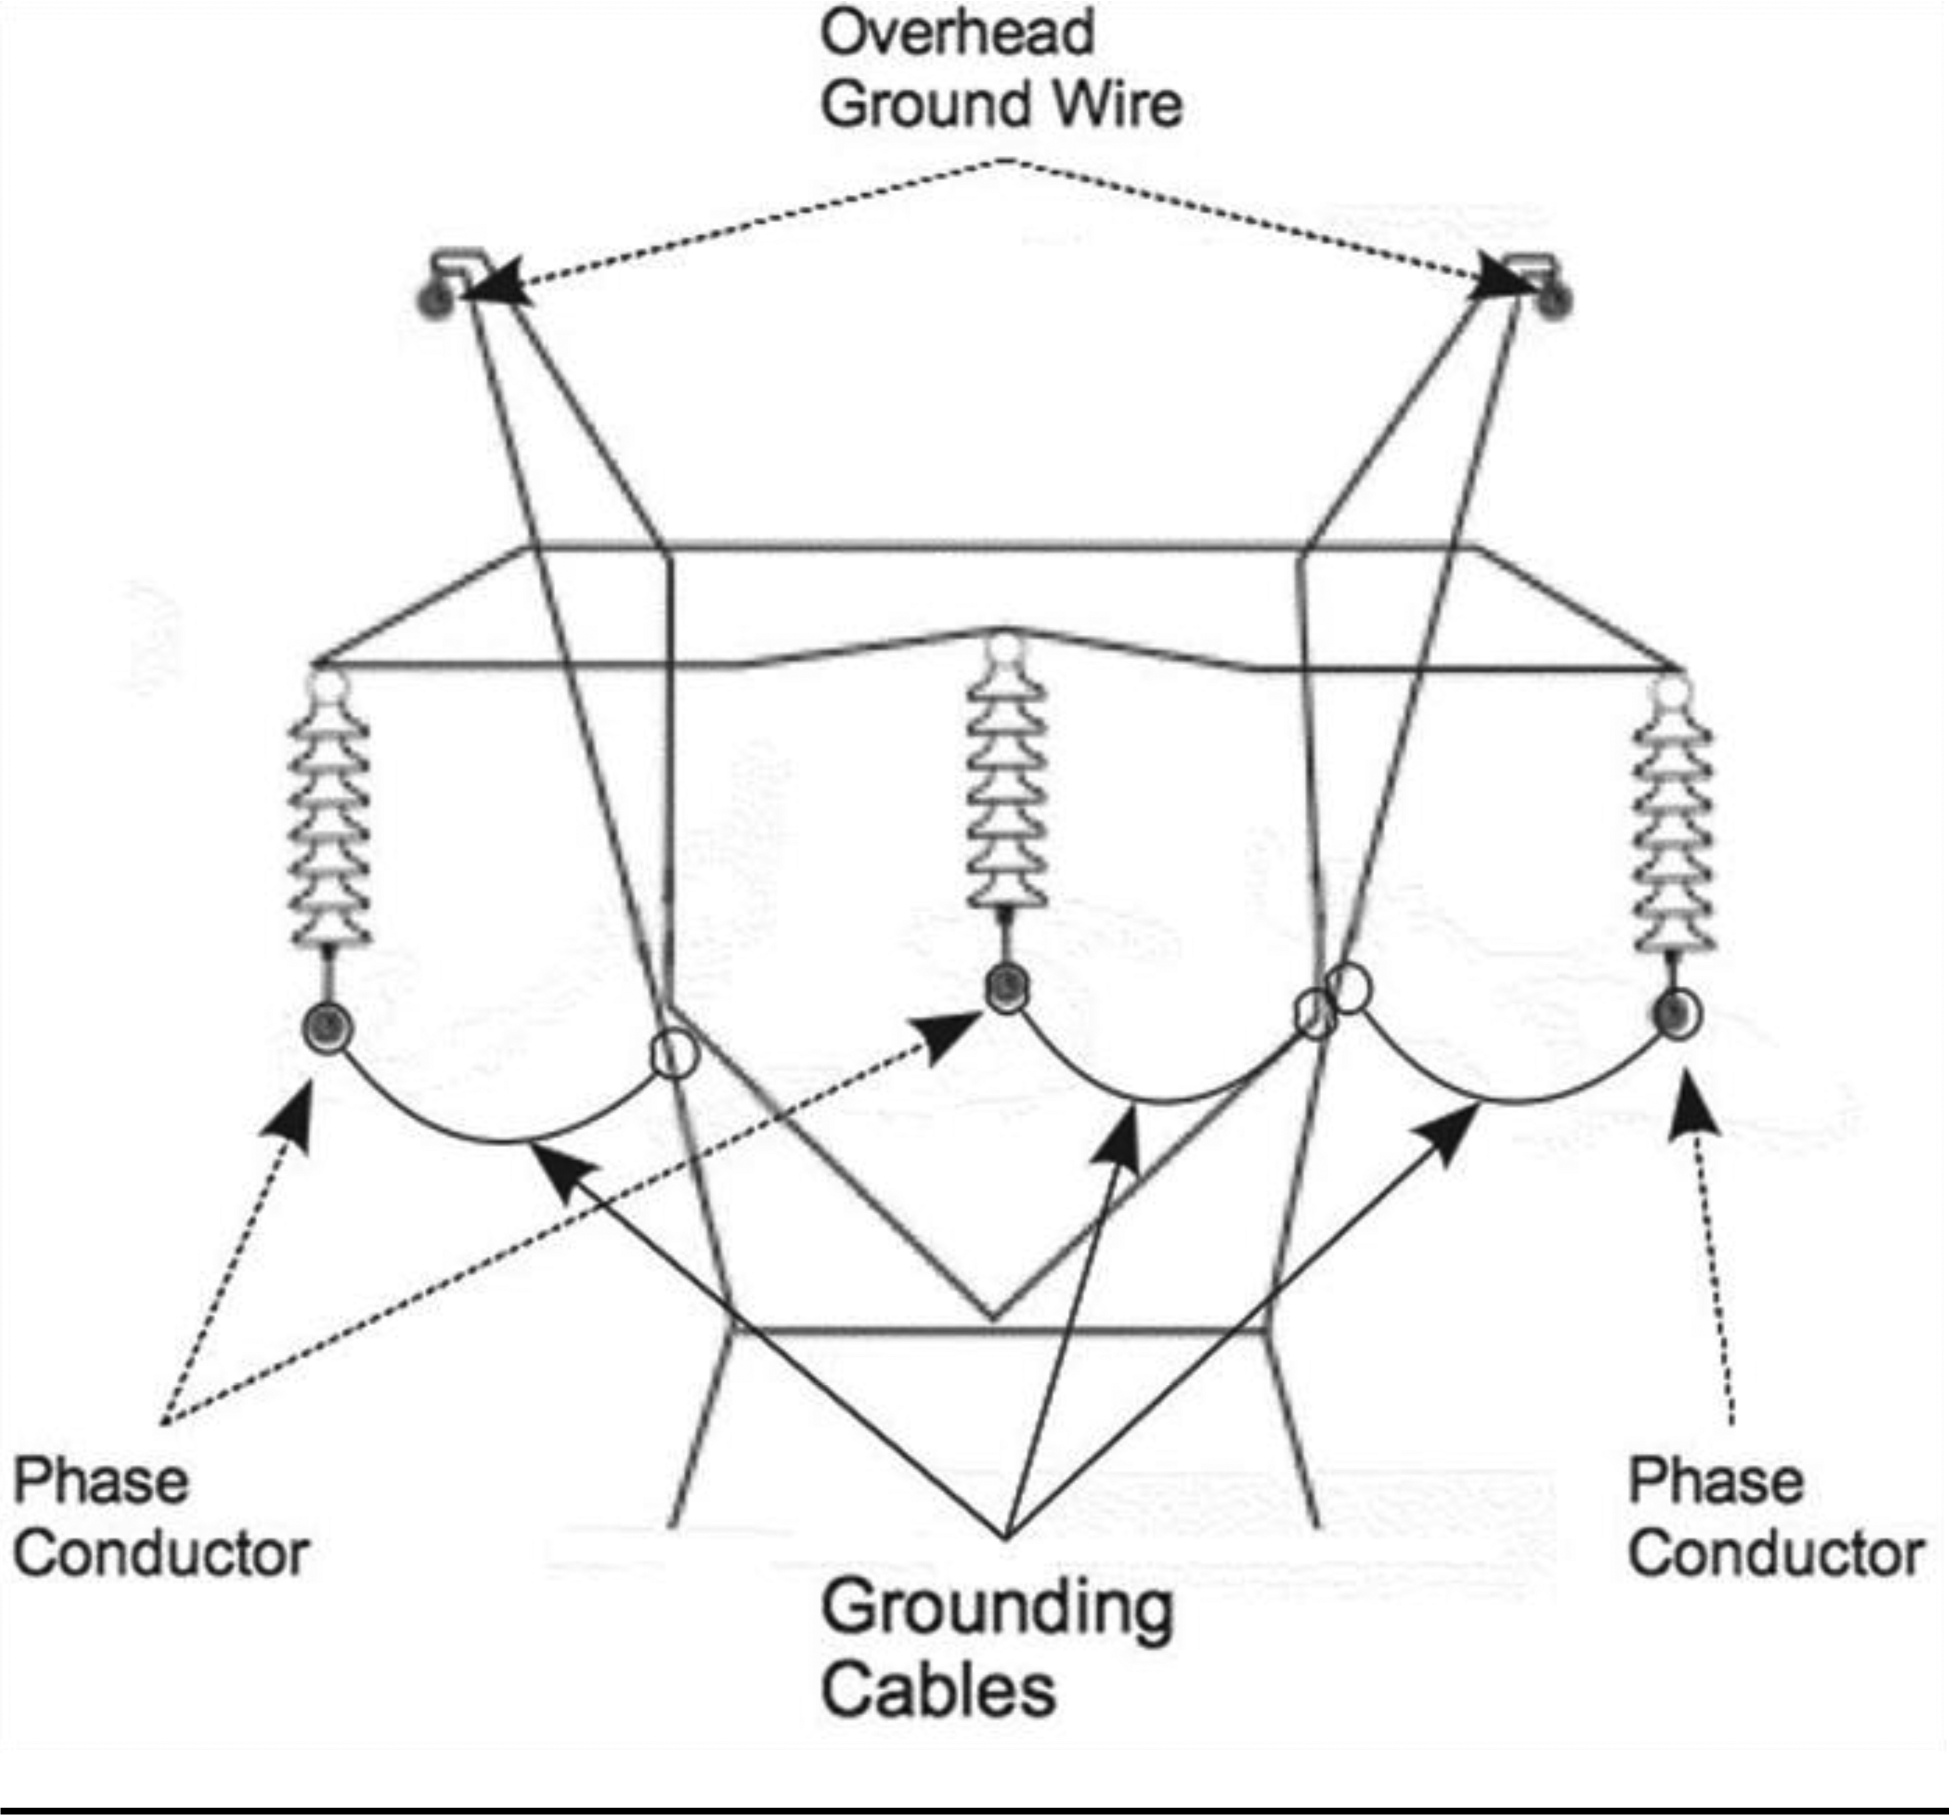 16 10 082 Tree 325 Proximity Switch Wiring Diagram Figure E Shows How To Create An Equipotential Zone For Wood Poles